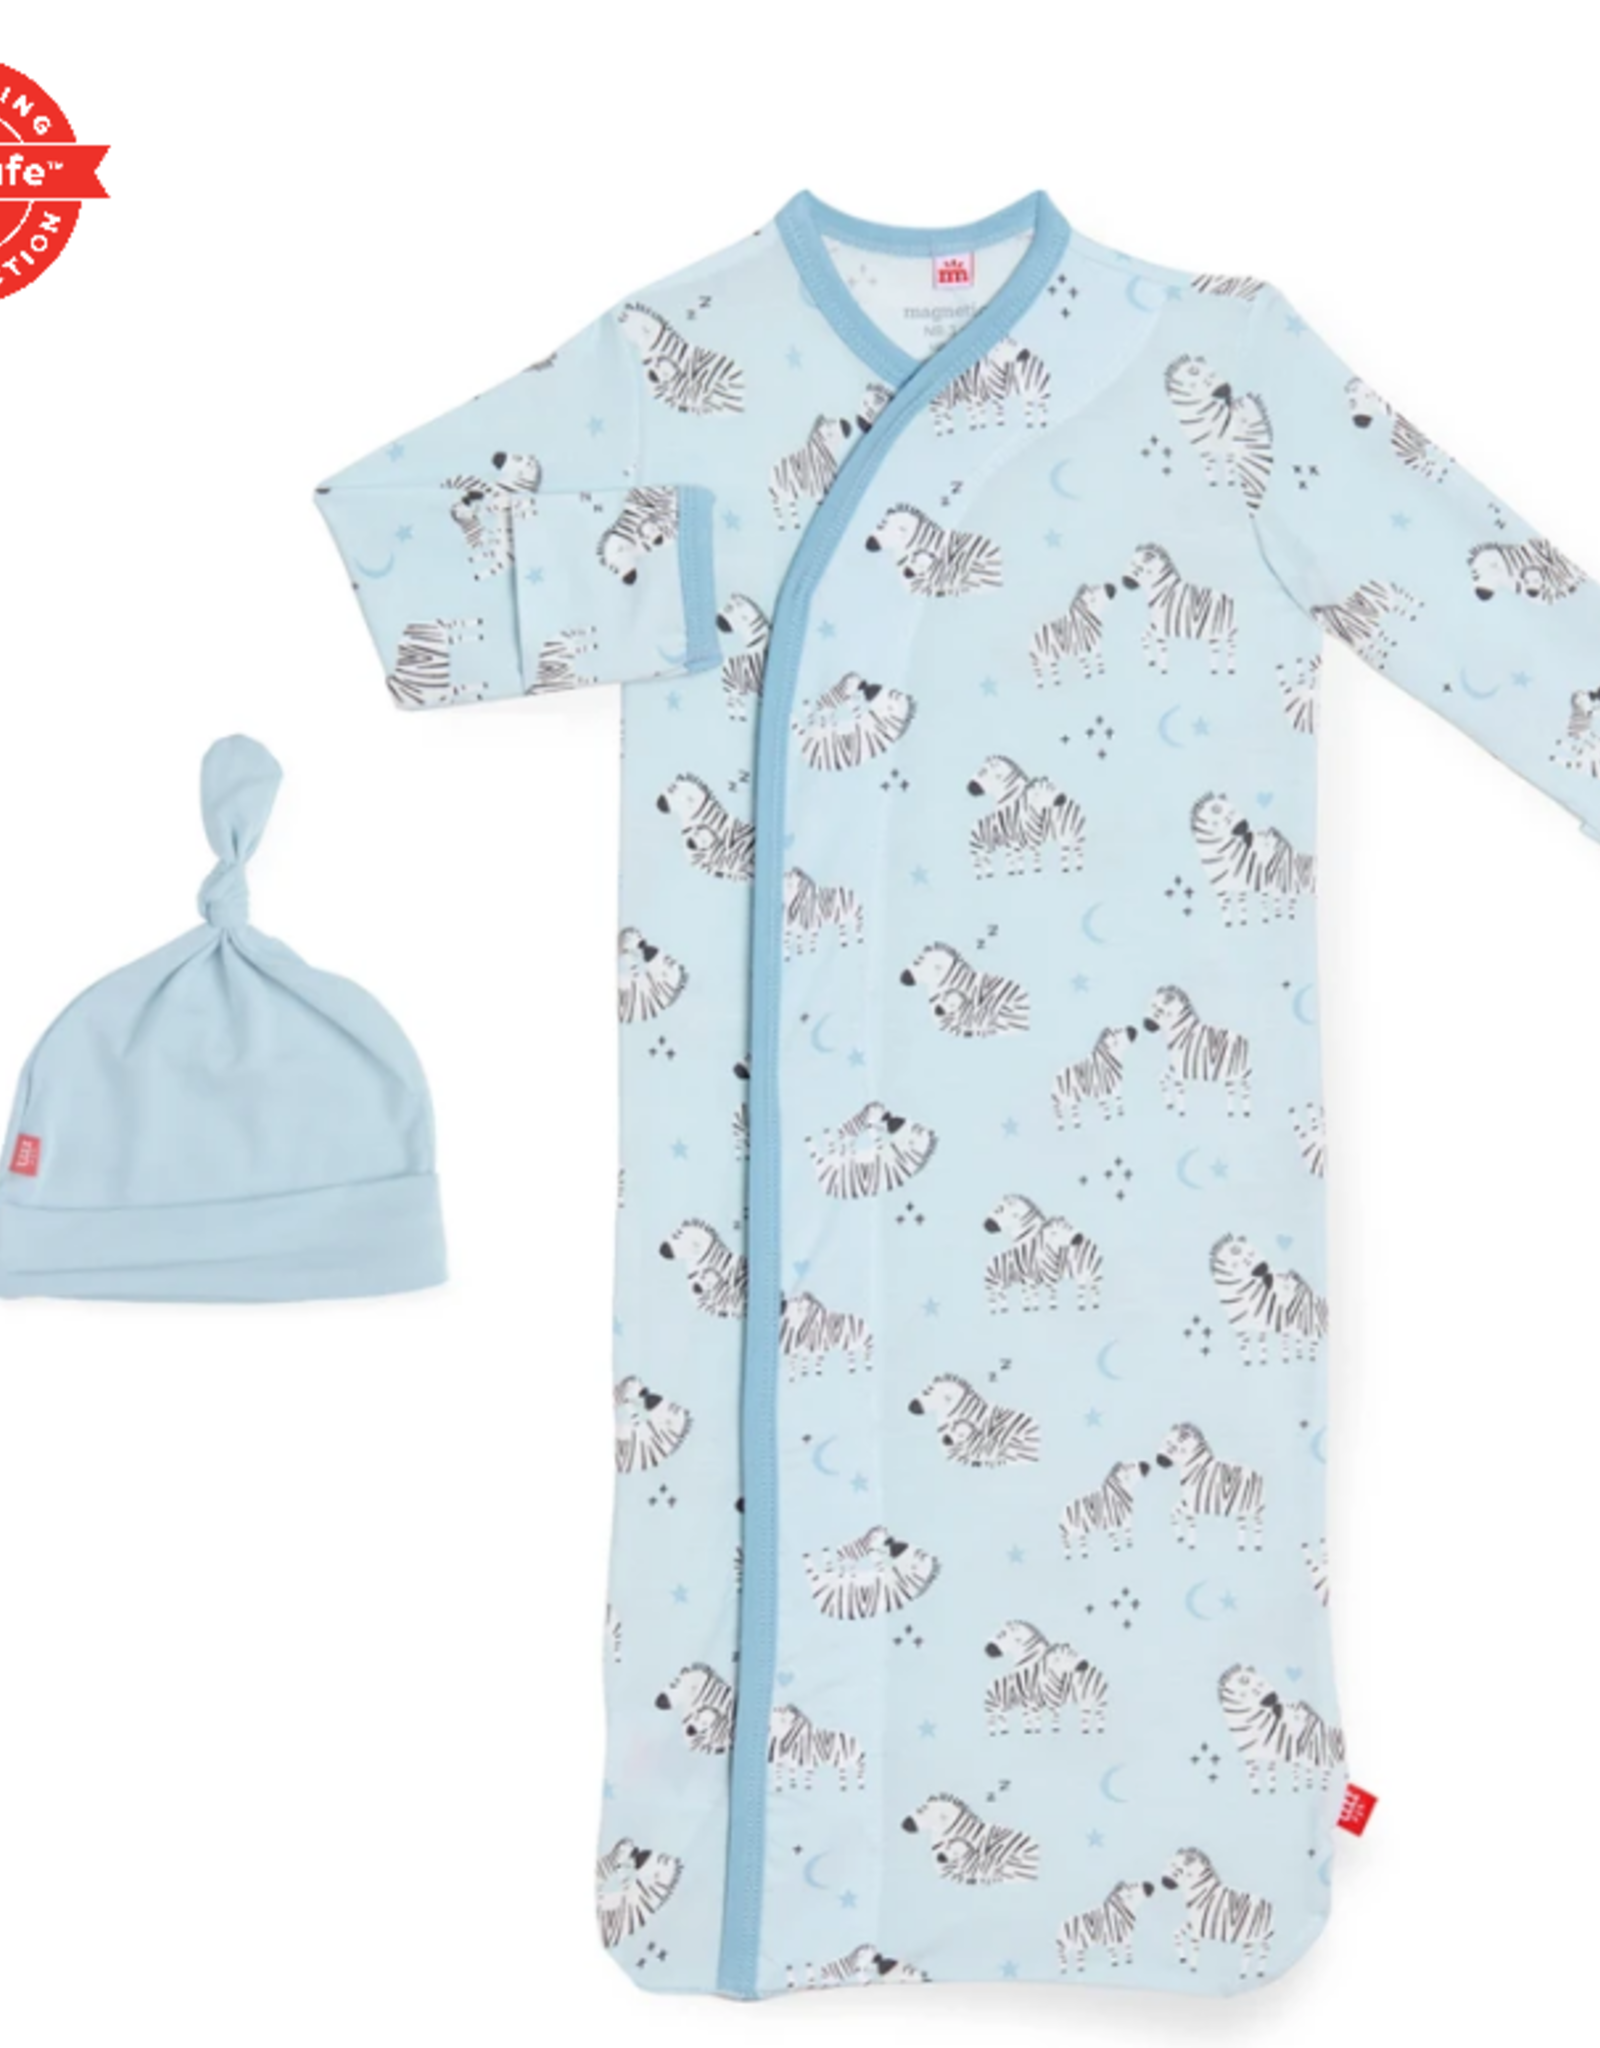 Magnificent Baby Blue Little One Magnetic Gown Set